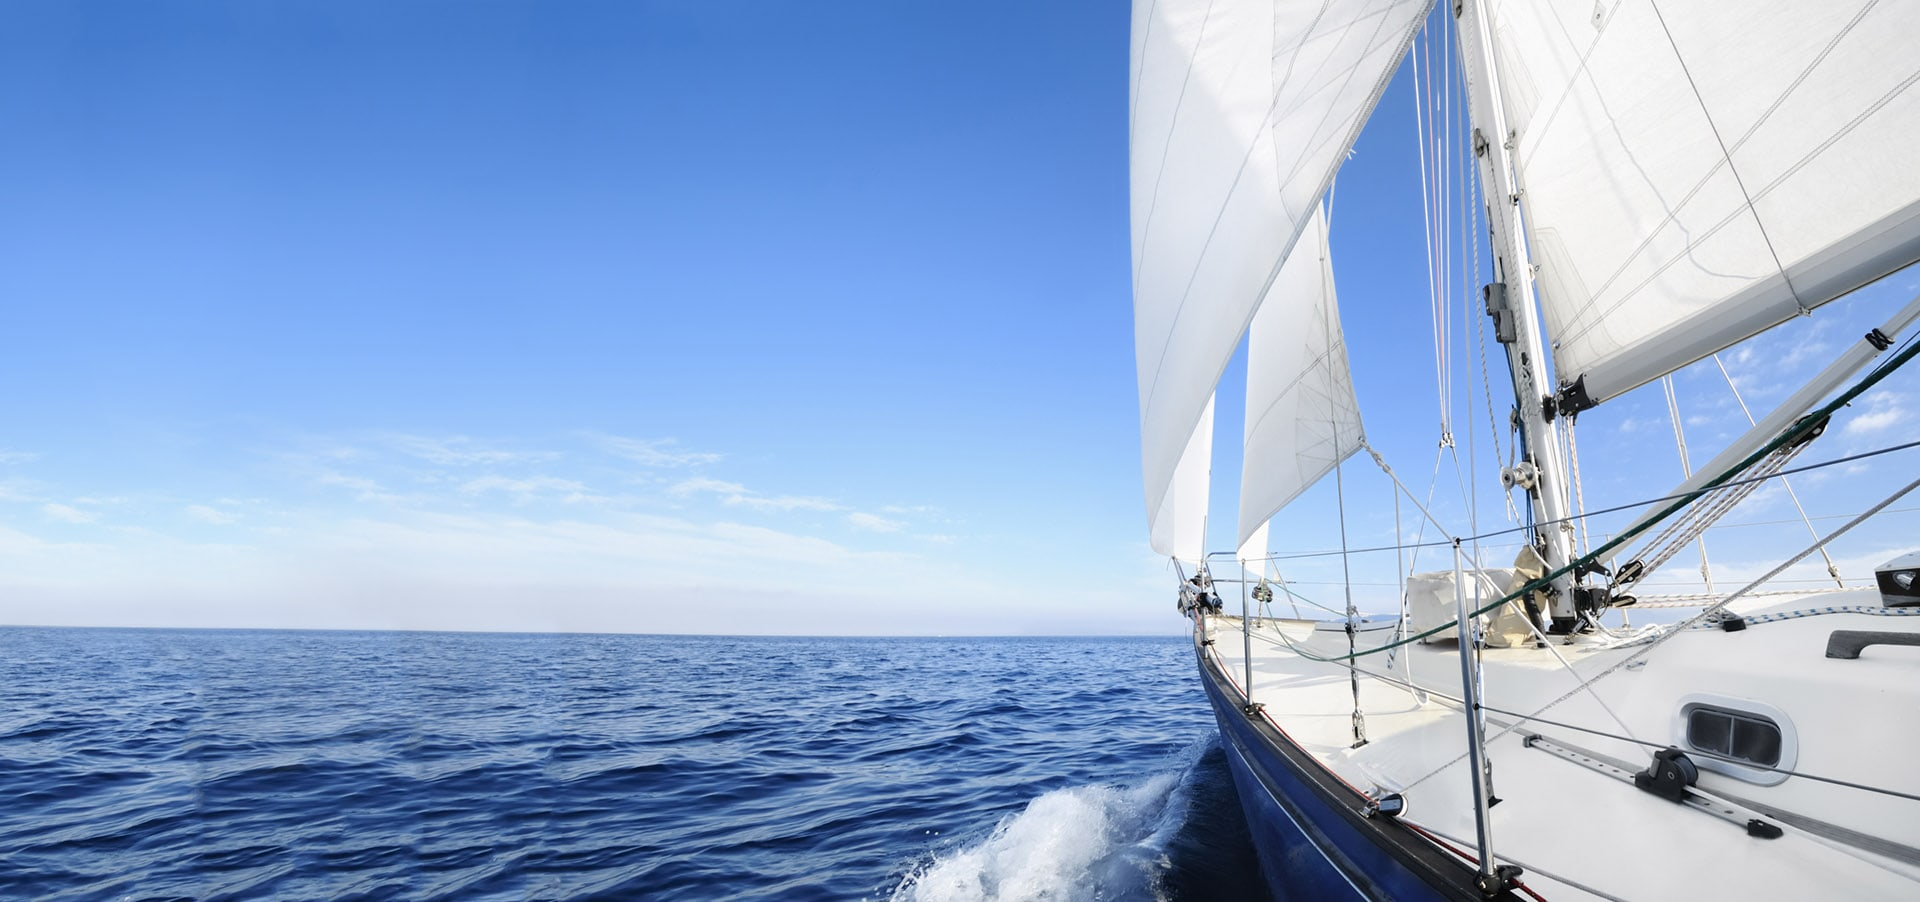 Sail boat in the middle of the ocean